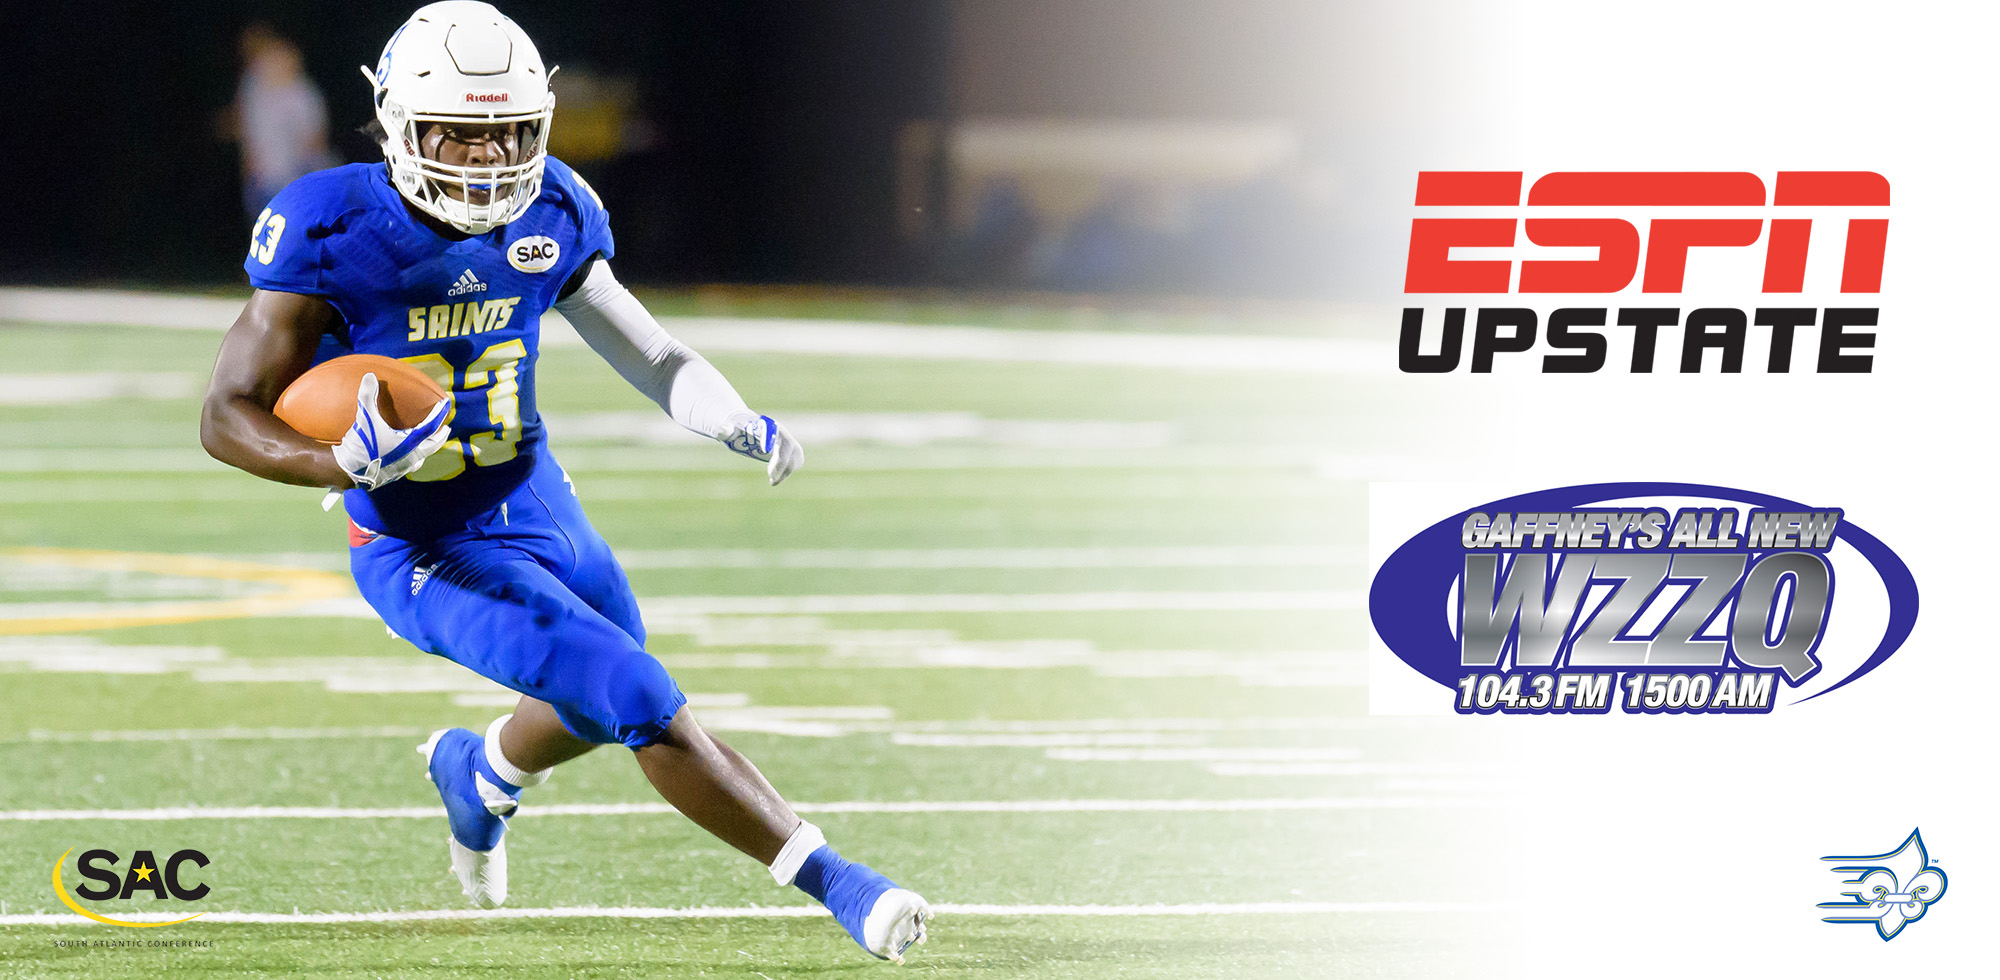 Limestone Football To Hit The Airwaves With A Trio Of Radio